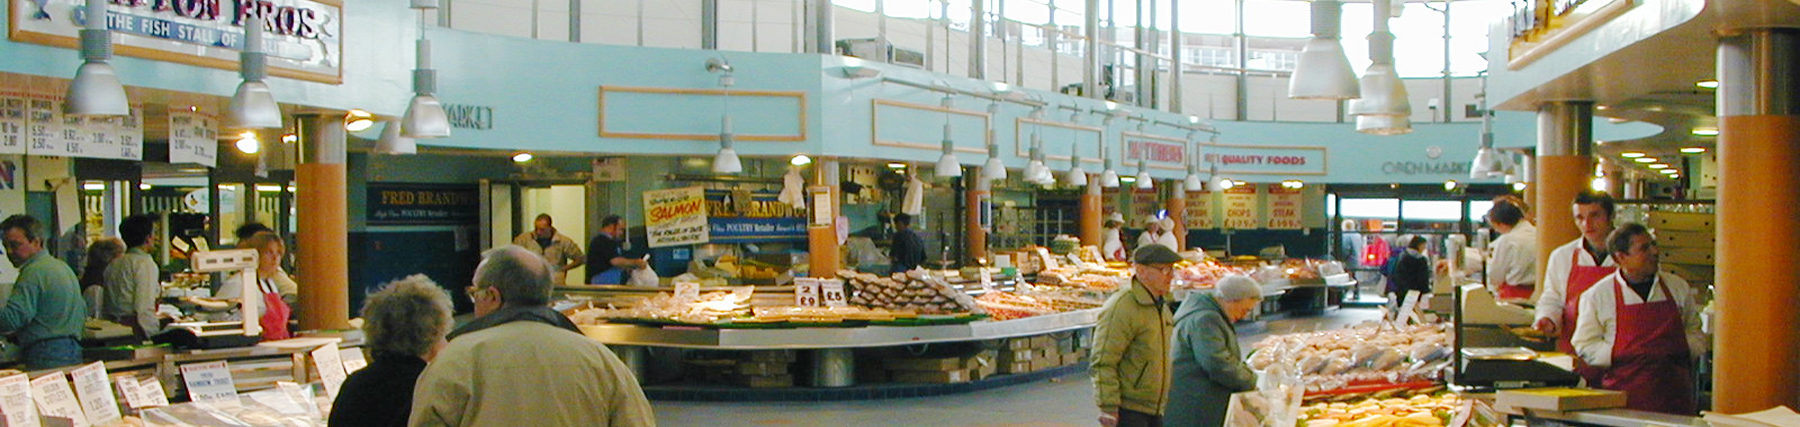 Bury meat and fish market